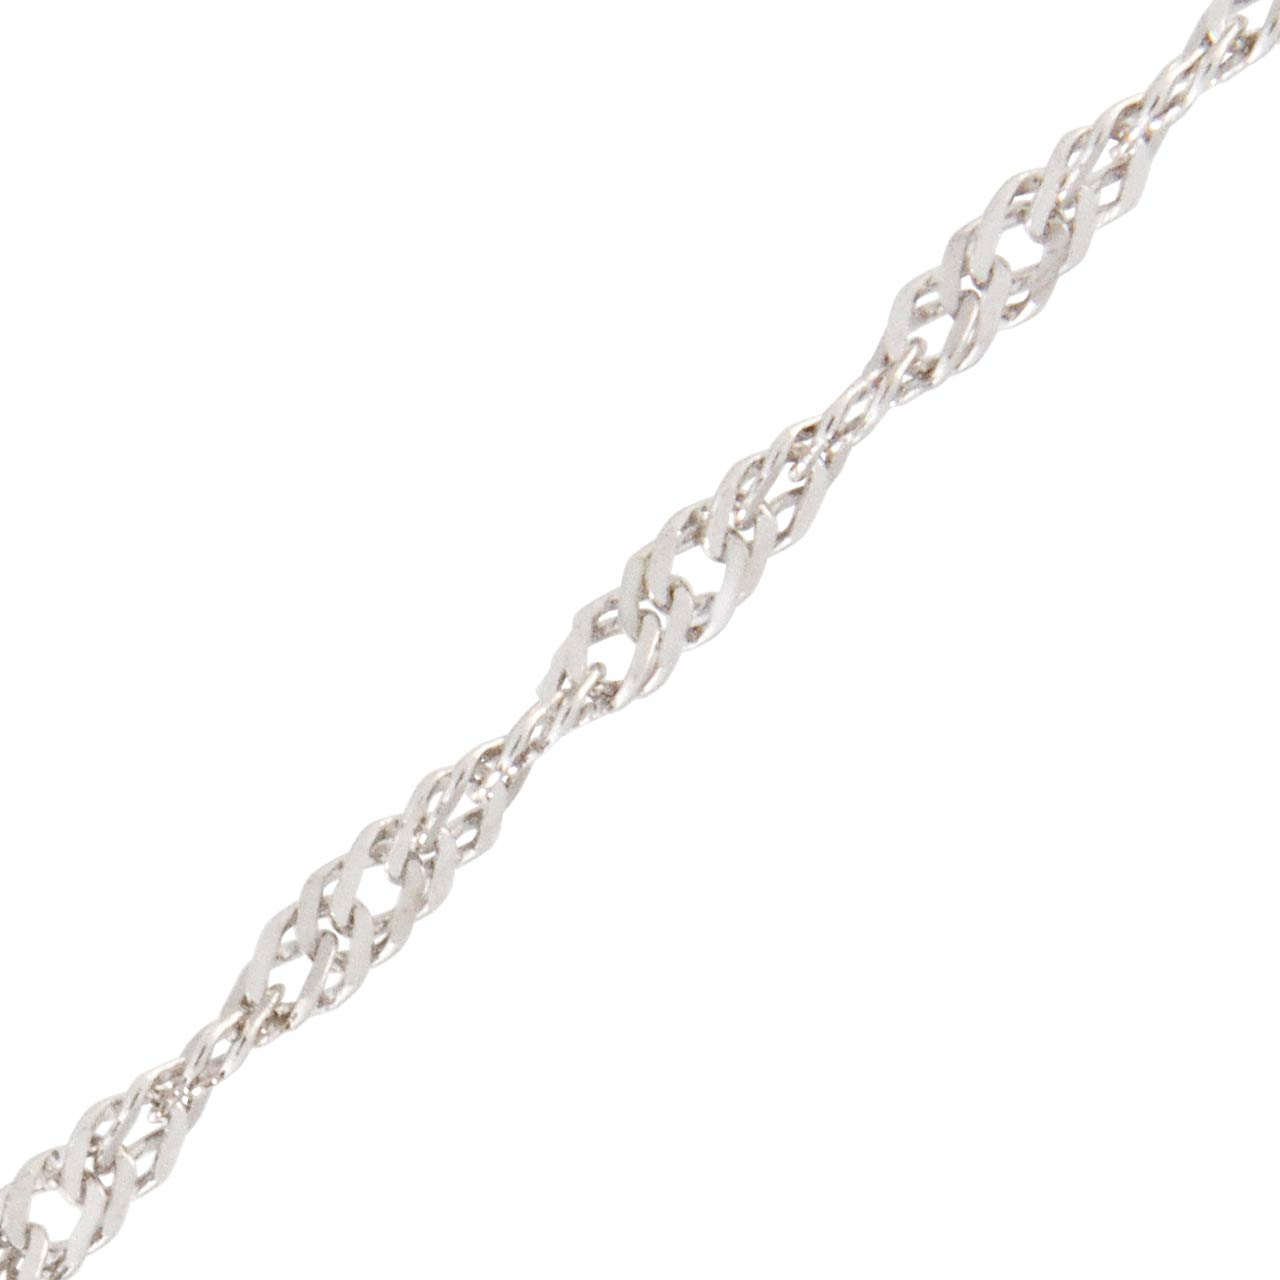 White gold Singapore chain 2